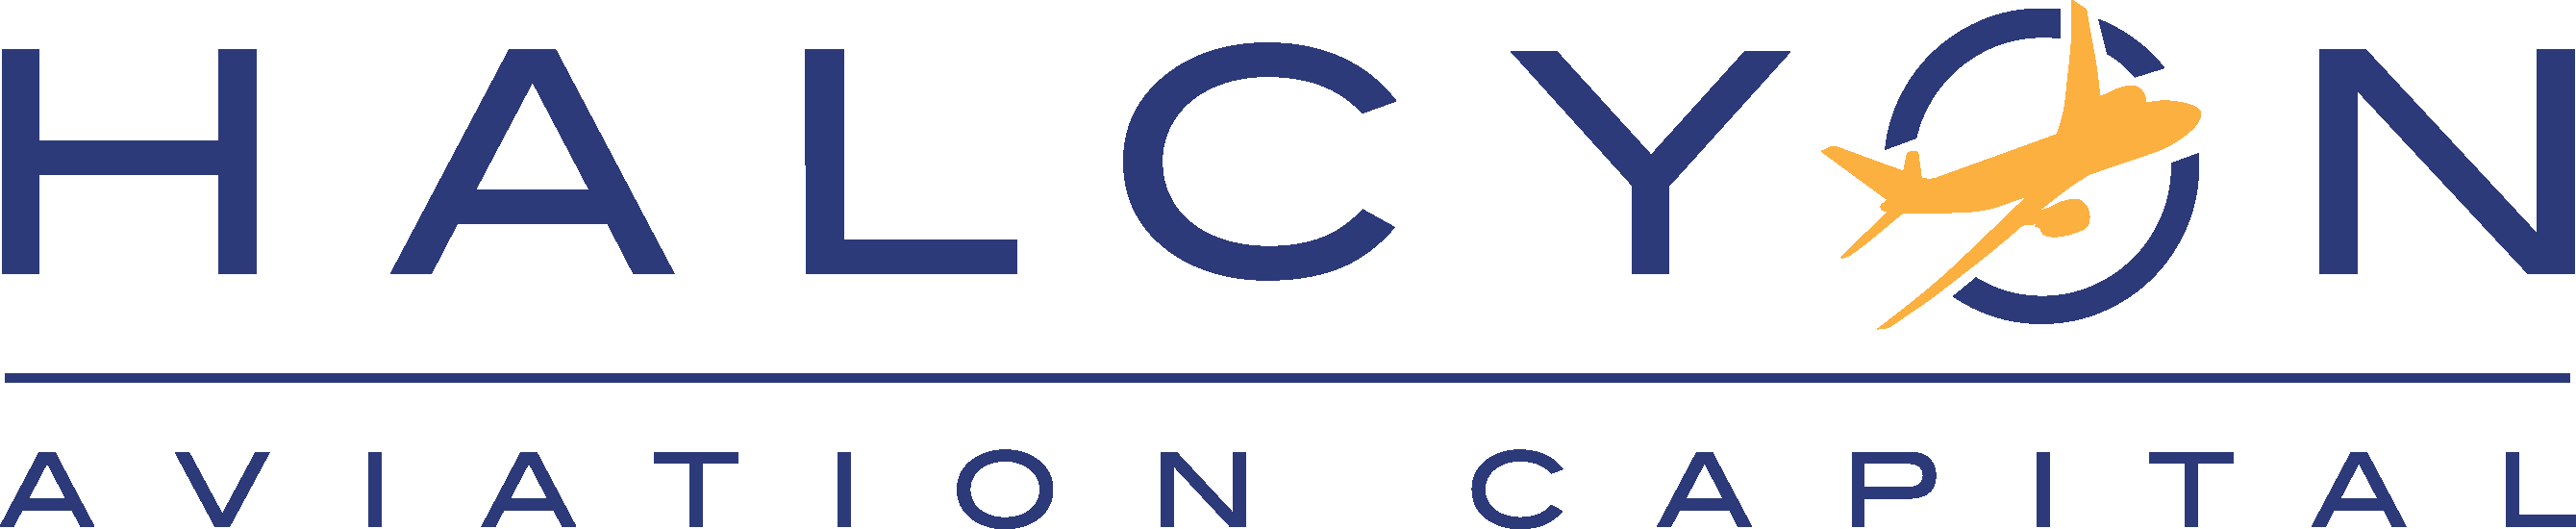 Halcyon logo final